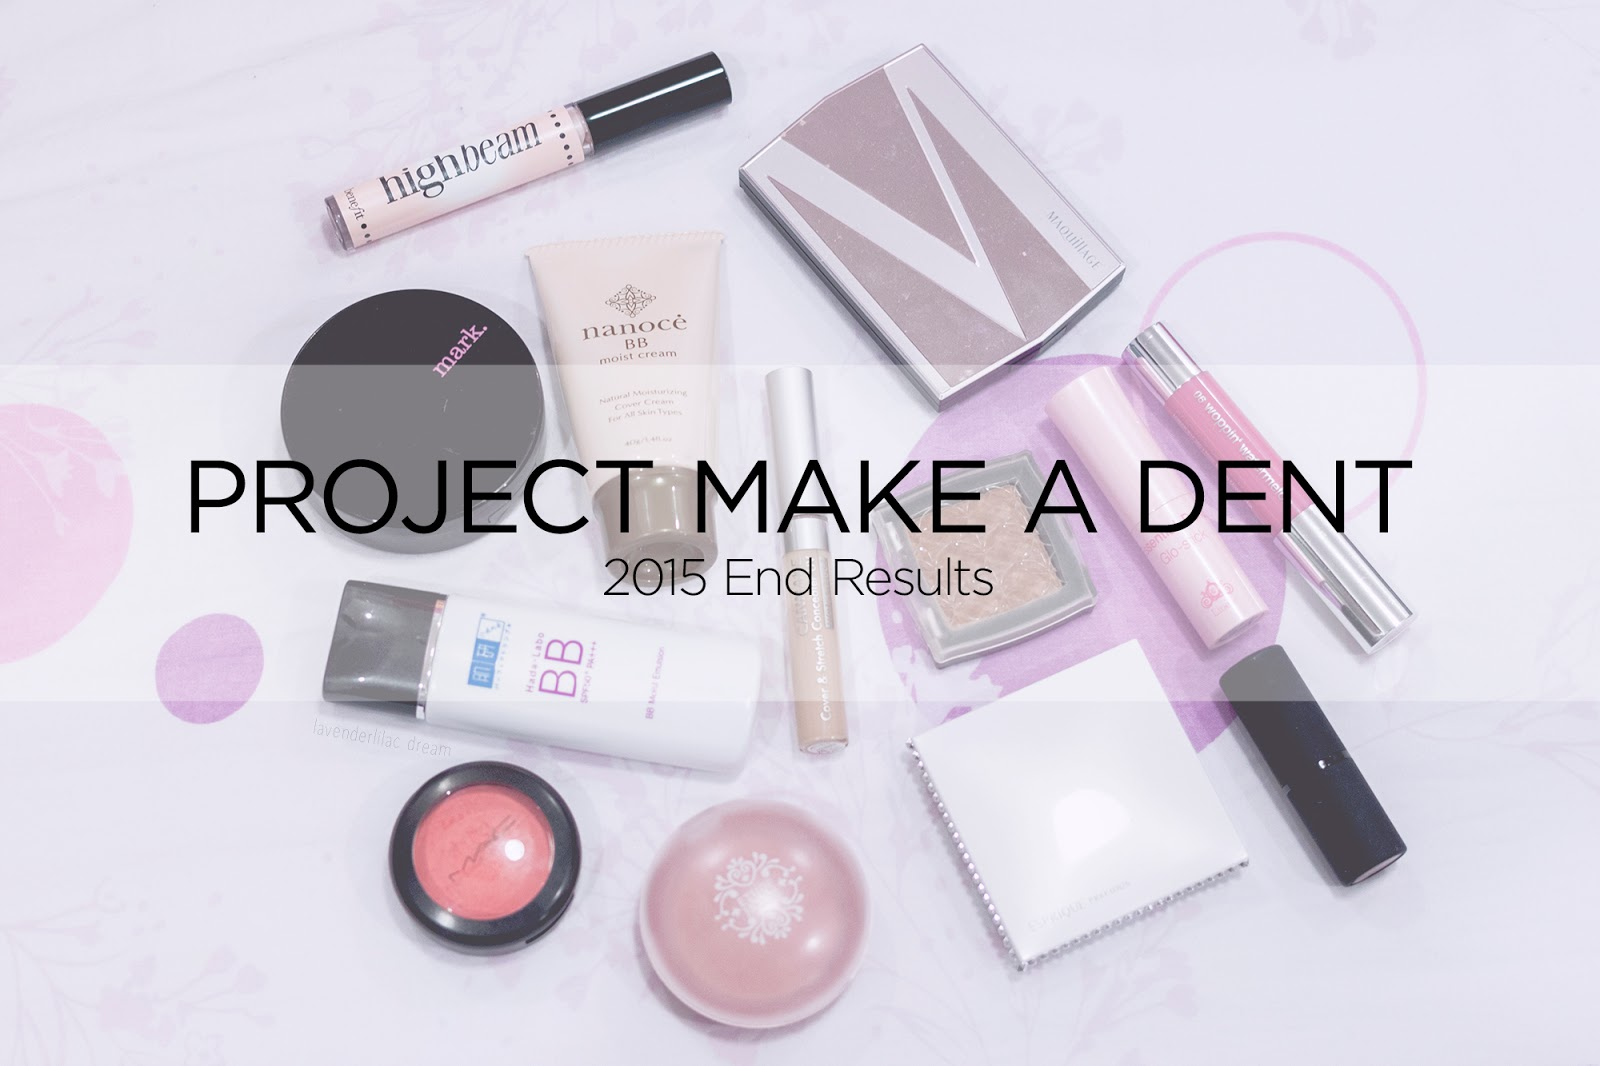 Project make a dent 2015 end results